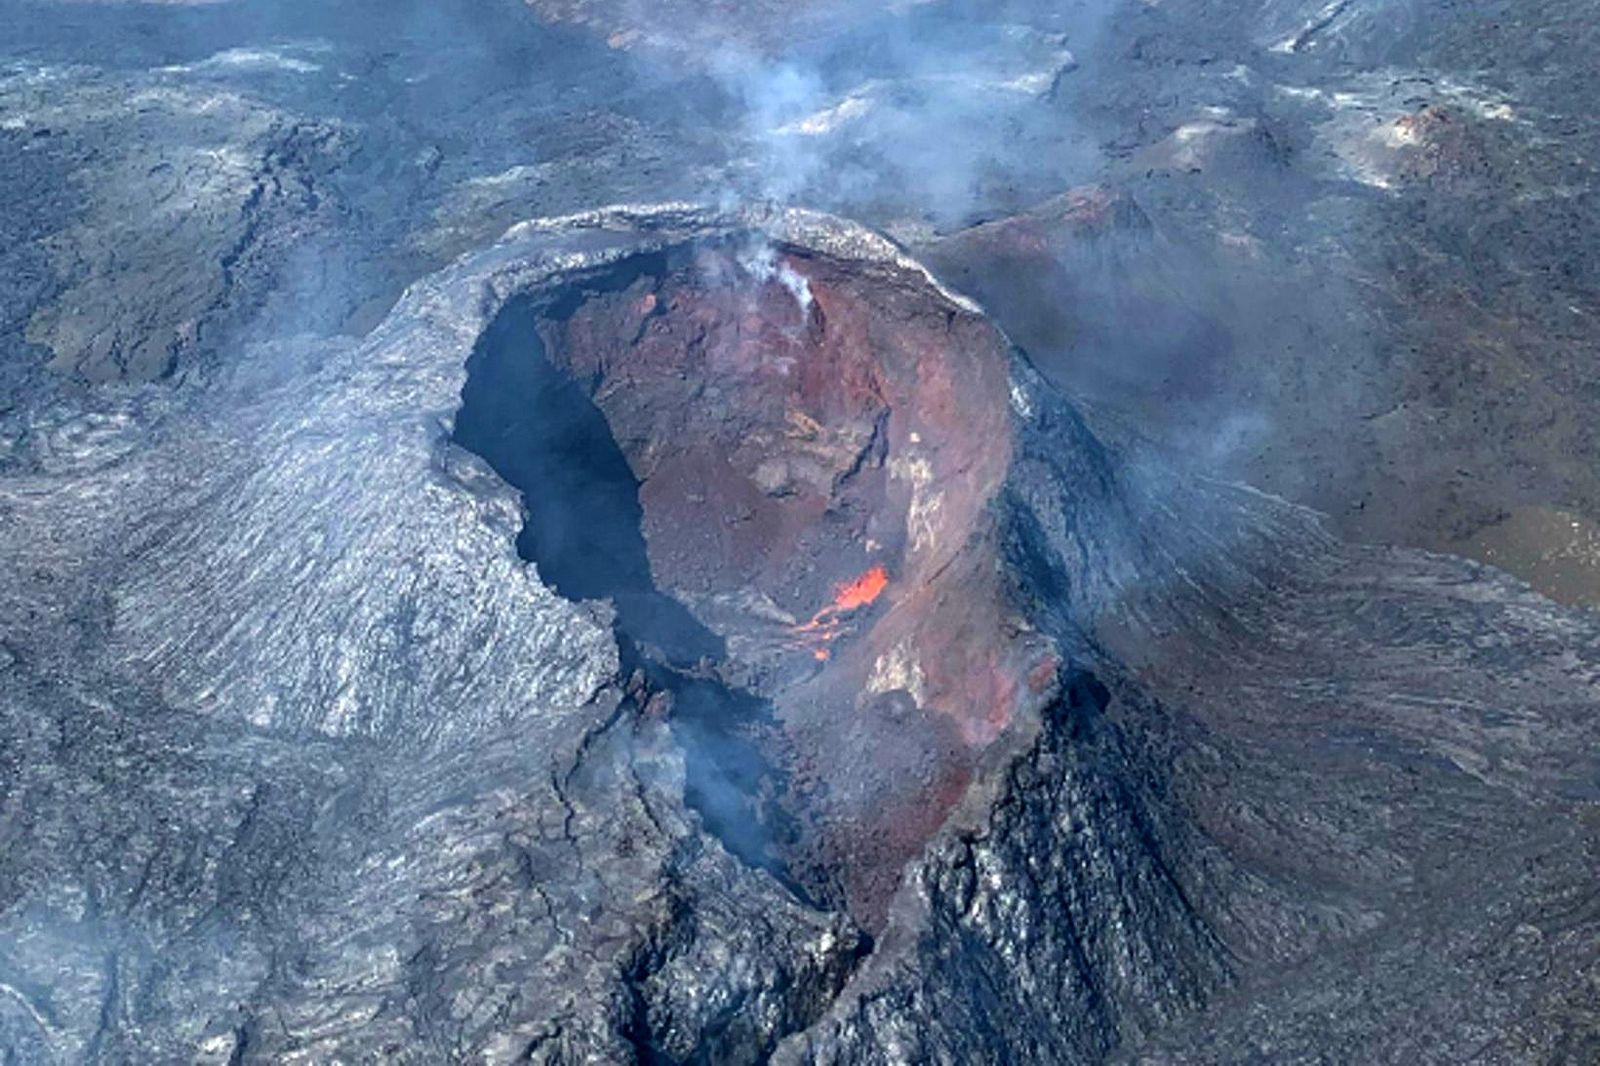 2021.07.02 Fagradalsfjall - some lava in the crater on 02.07.2021 - photo Coast Guards via mbls